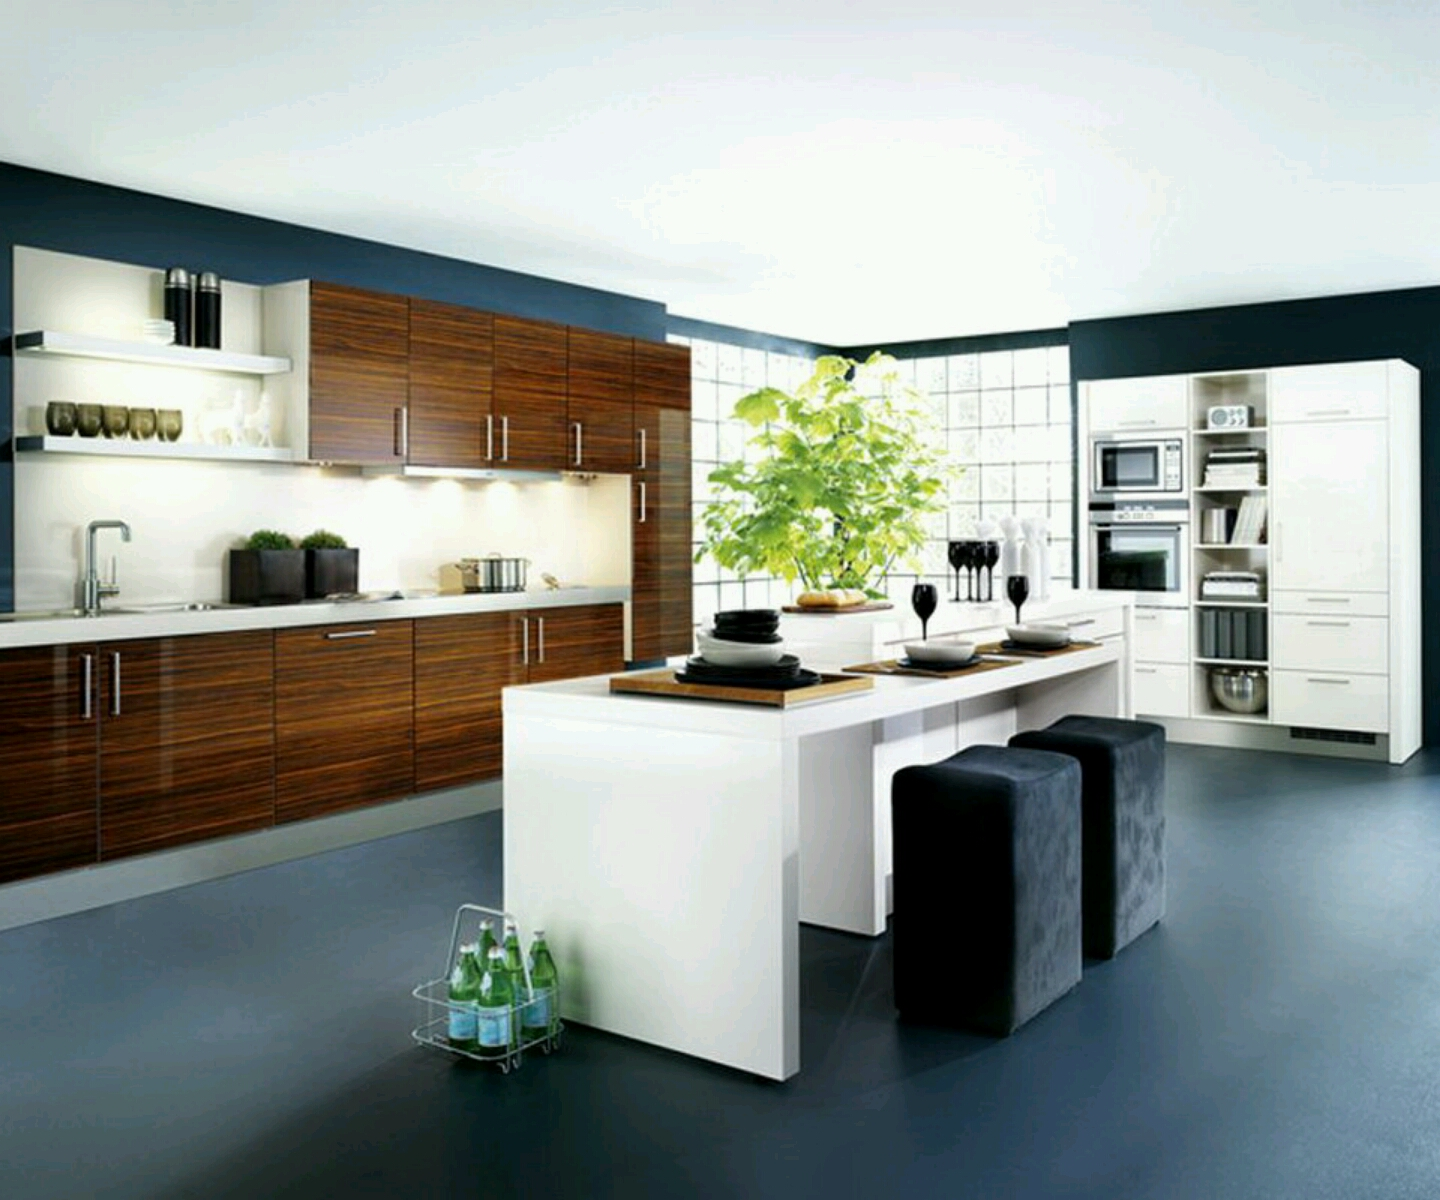 new home designs latest kitchen cabinets designs modern homes. Black Bedroom Furniture Sets. Home Design Ideas